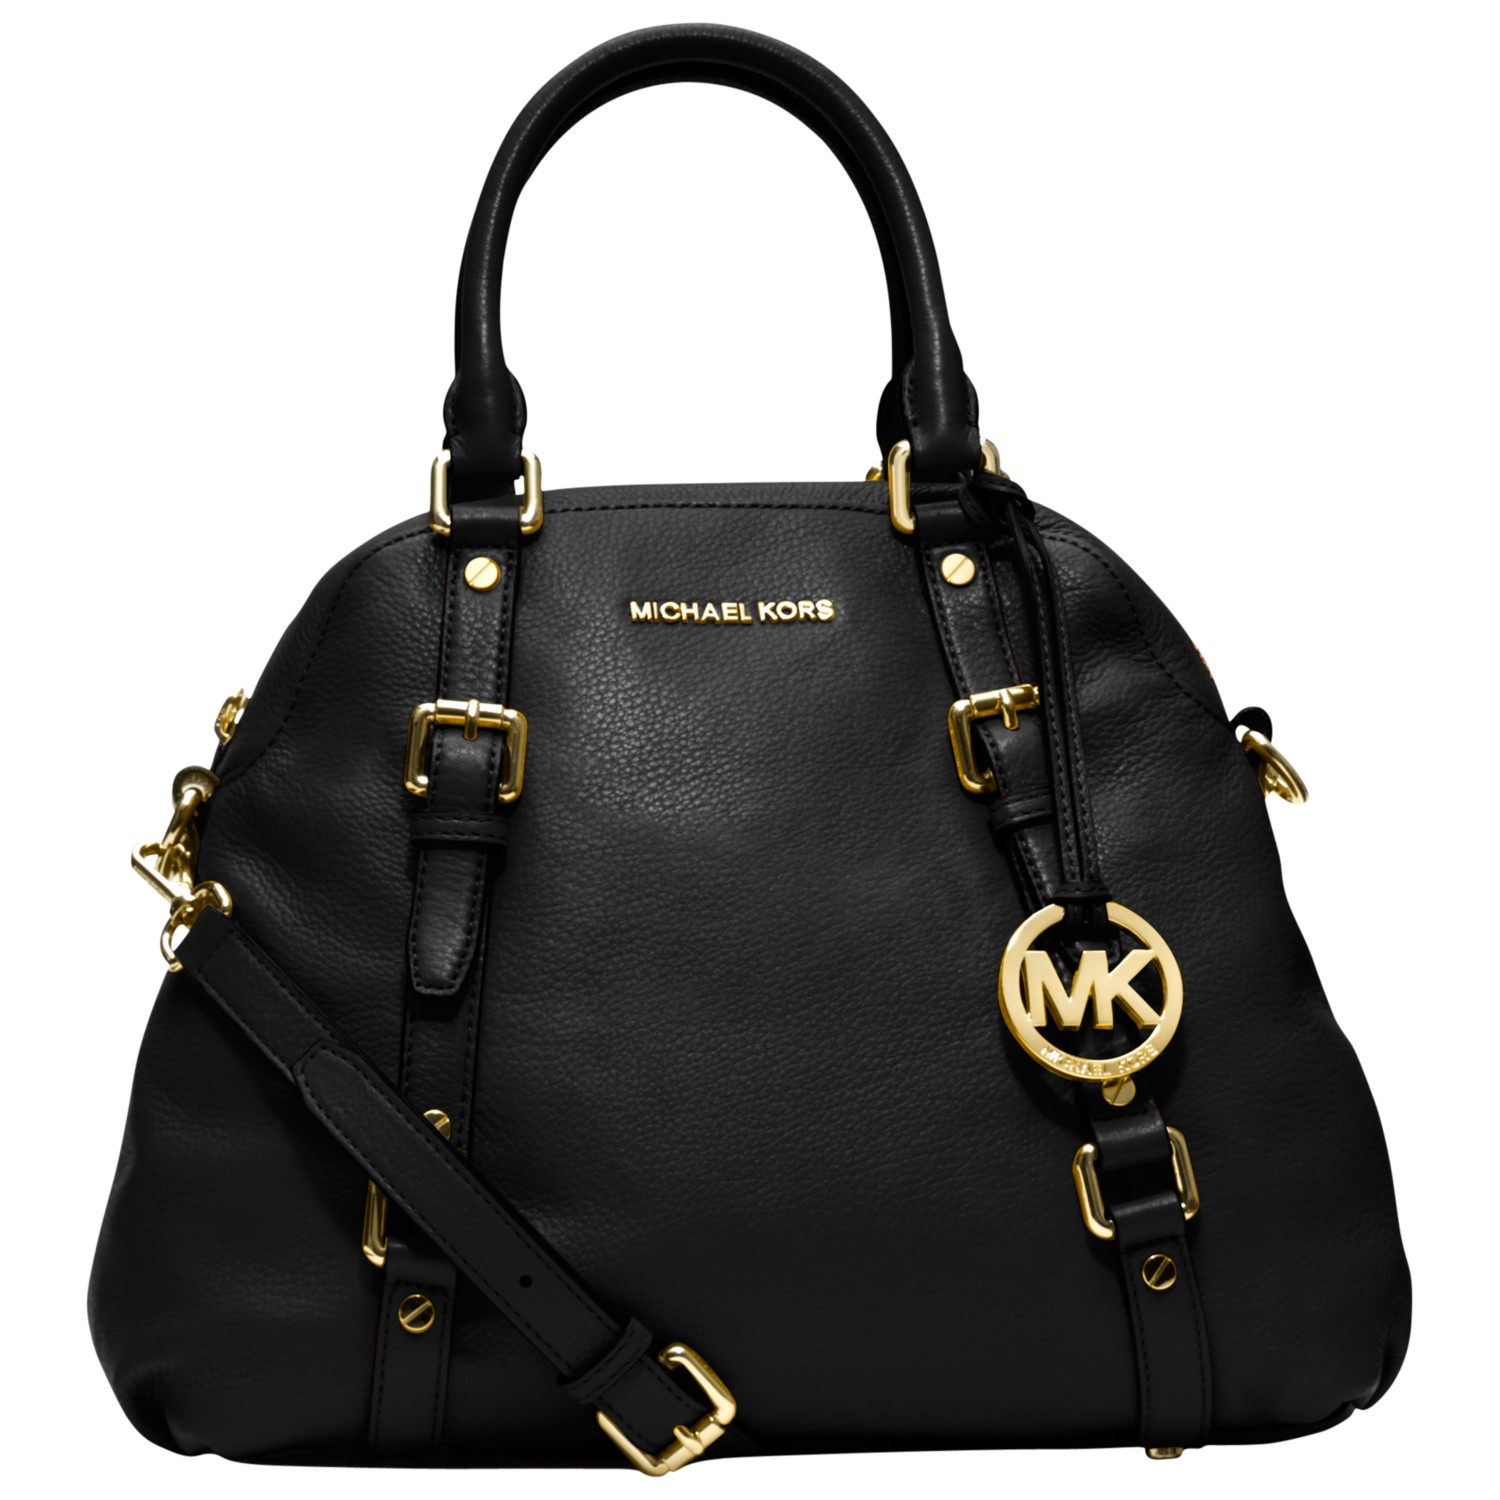 michael kors cheap Michael Kors Michael Michael Kors Women Bags, Michael Michael Kors 'Jet Set' tote BLACK Women % quality guarantee,michael kors online,On Sale michael kors clearance,Big discount on sale DESCRIPTION. Black calf leather 'Jet Set' tote from Michael Michael Kors.